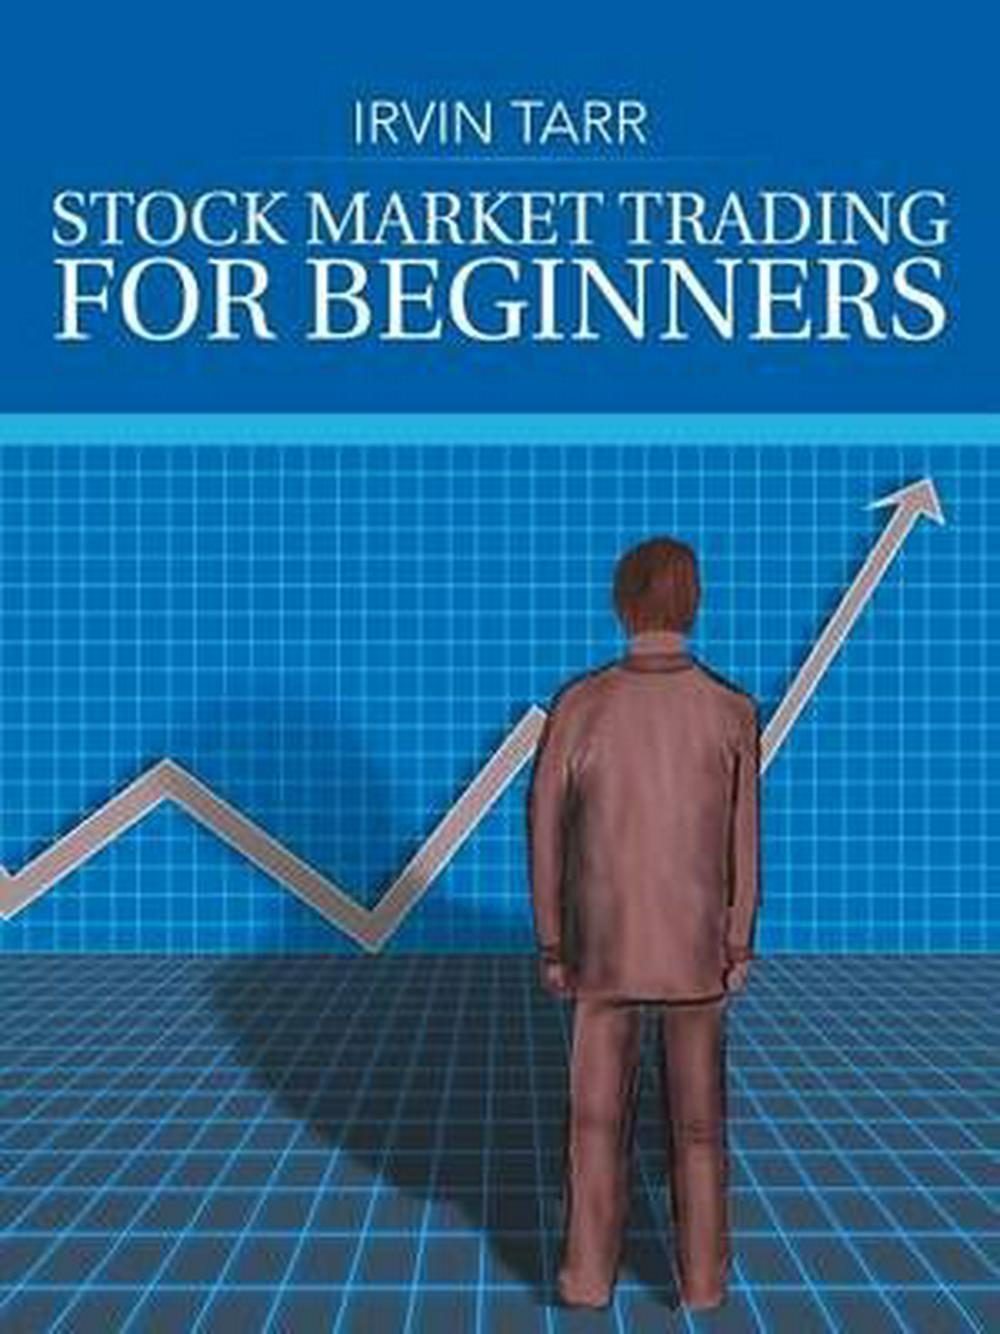 Stock Market Trading for Beginners by Irvin Tarr (English) Paperback Book Free S